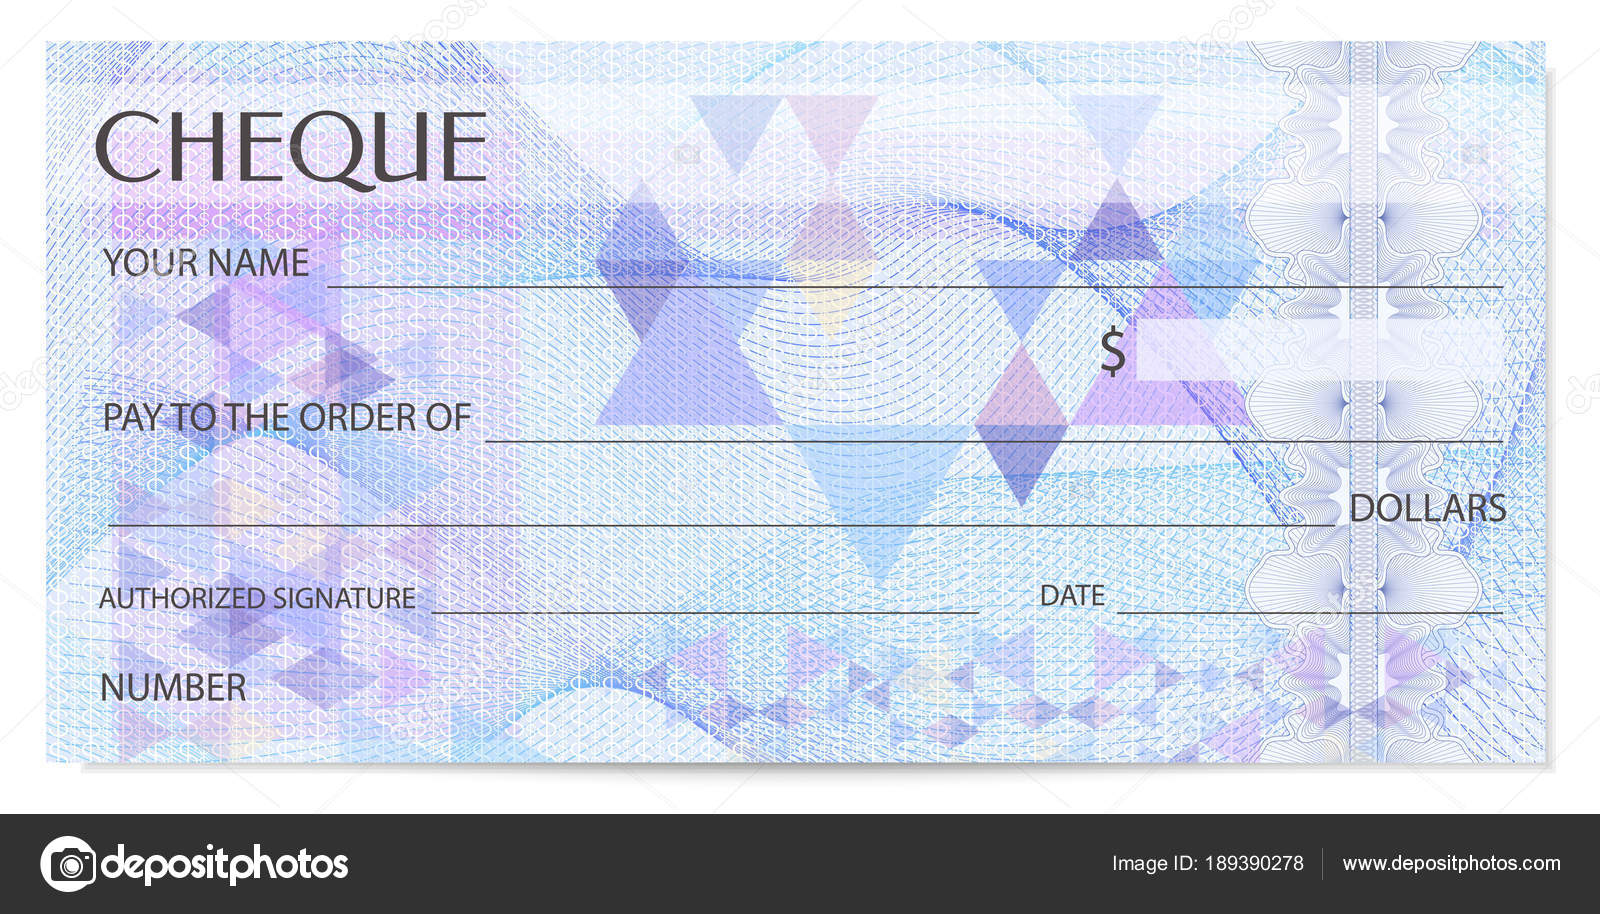 Check Cheque Chequebook Template Guilloche Pattern Abstract ...